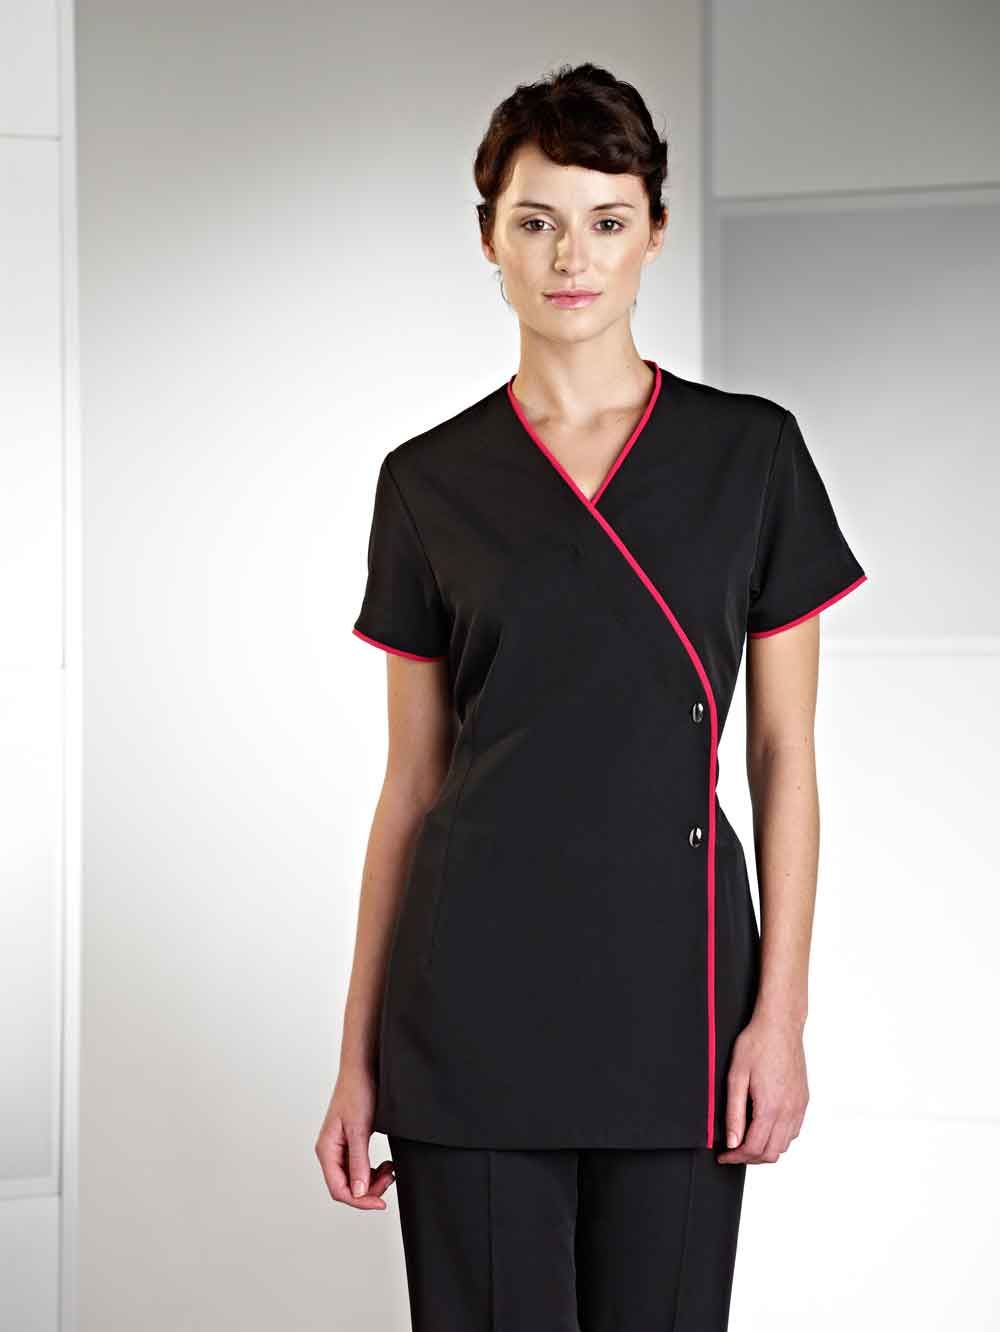 Eco uniforms hotels google search uniforms pinterest for Uniform spa salon